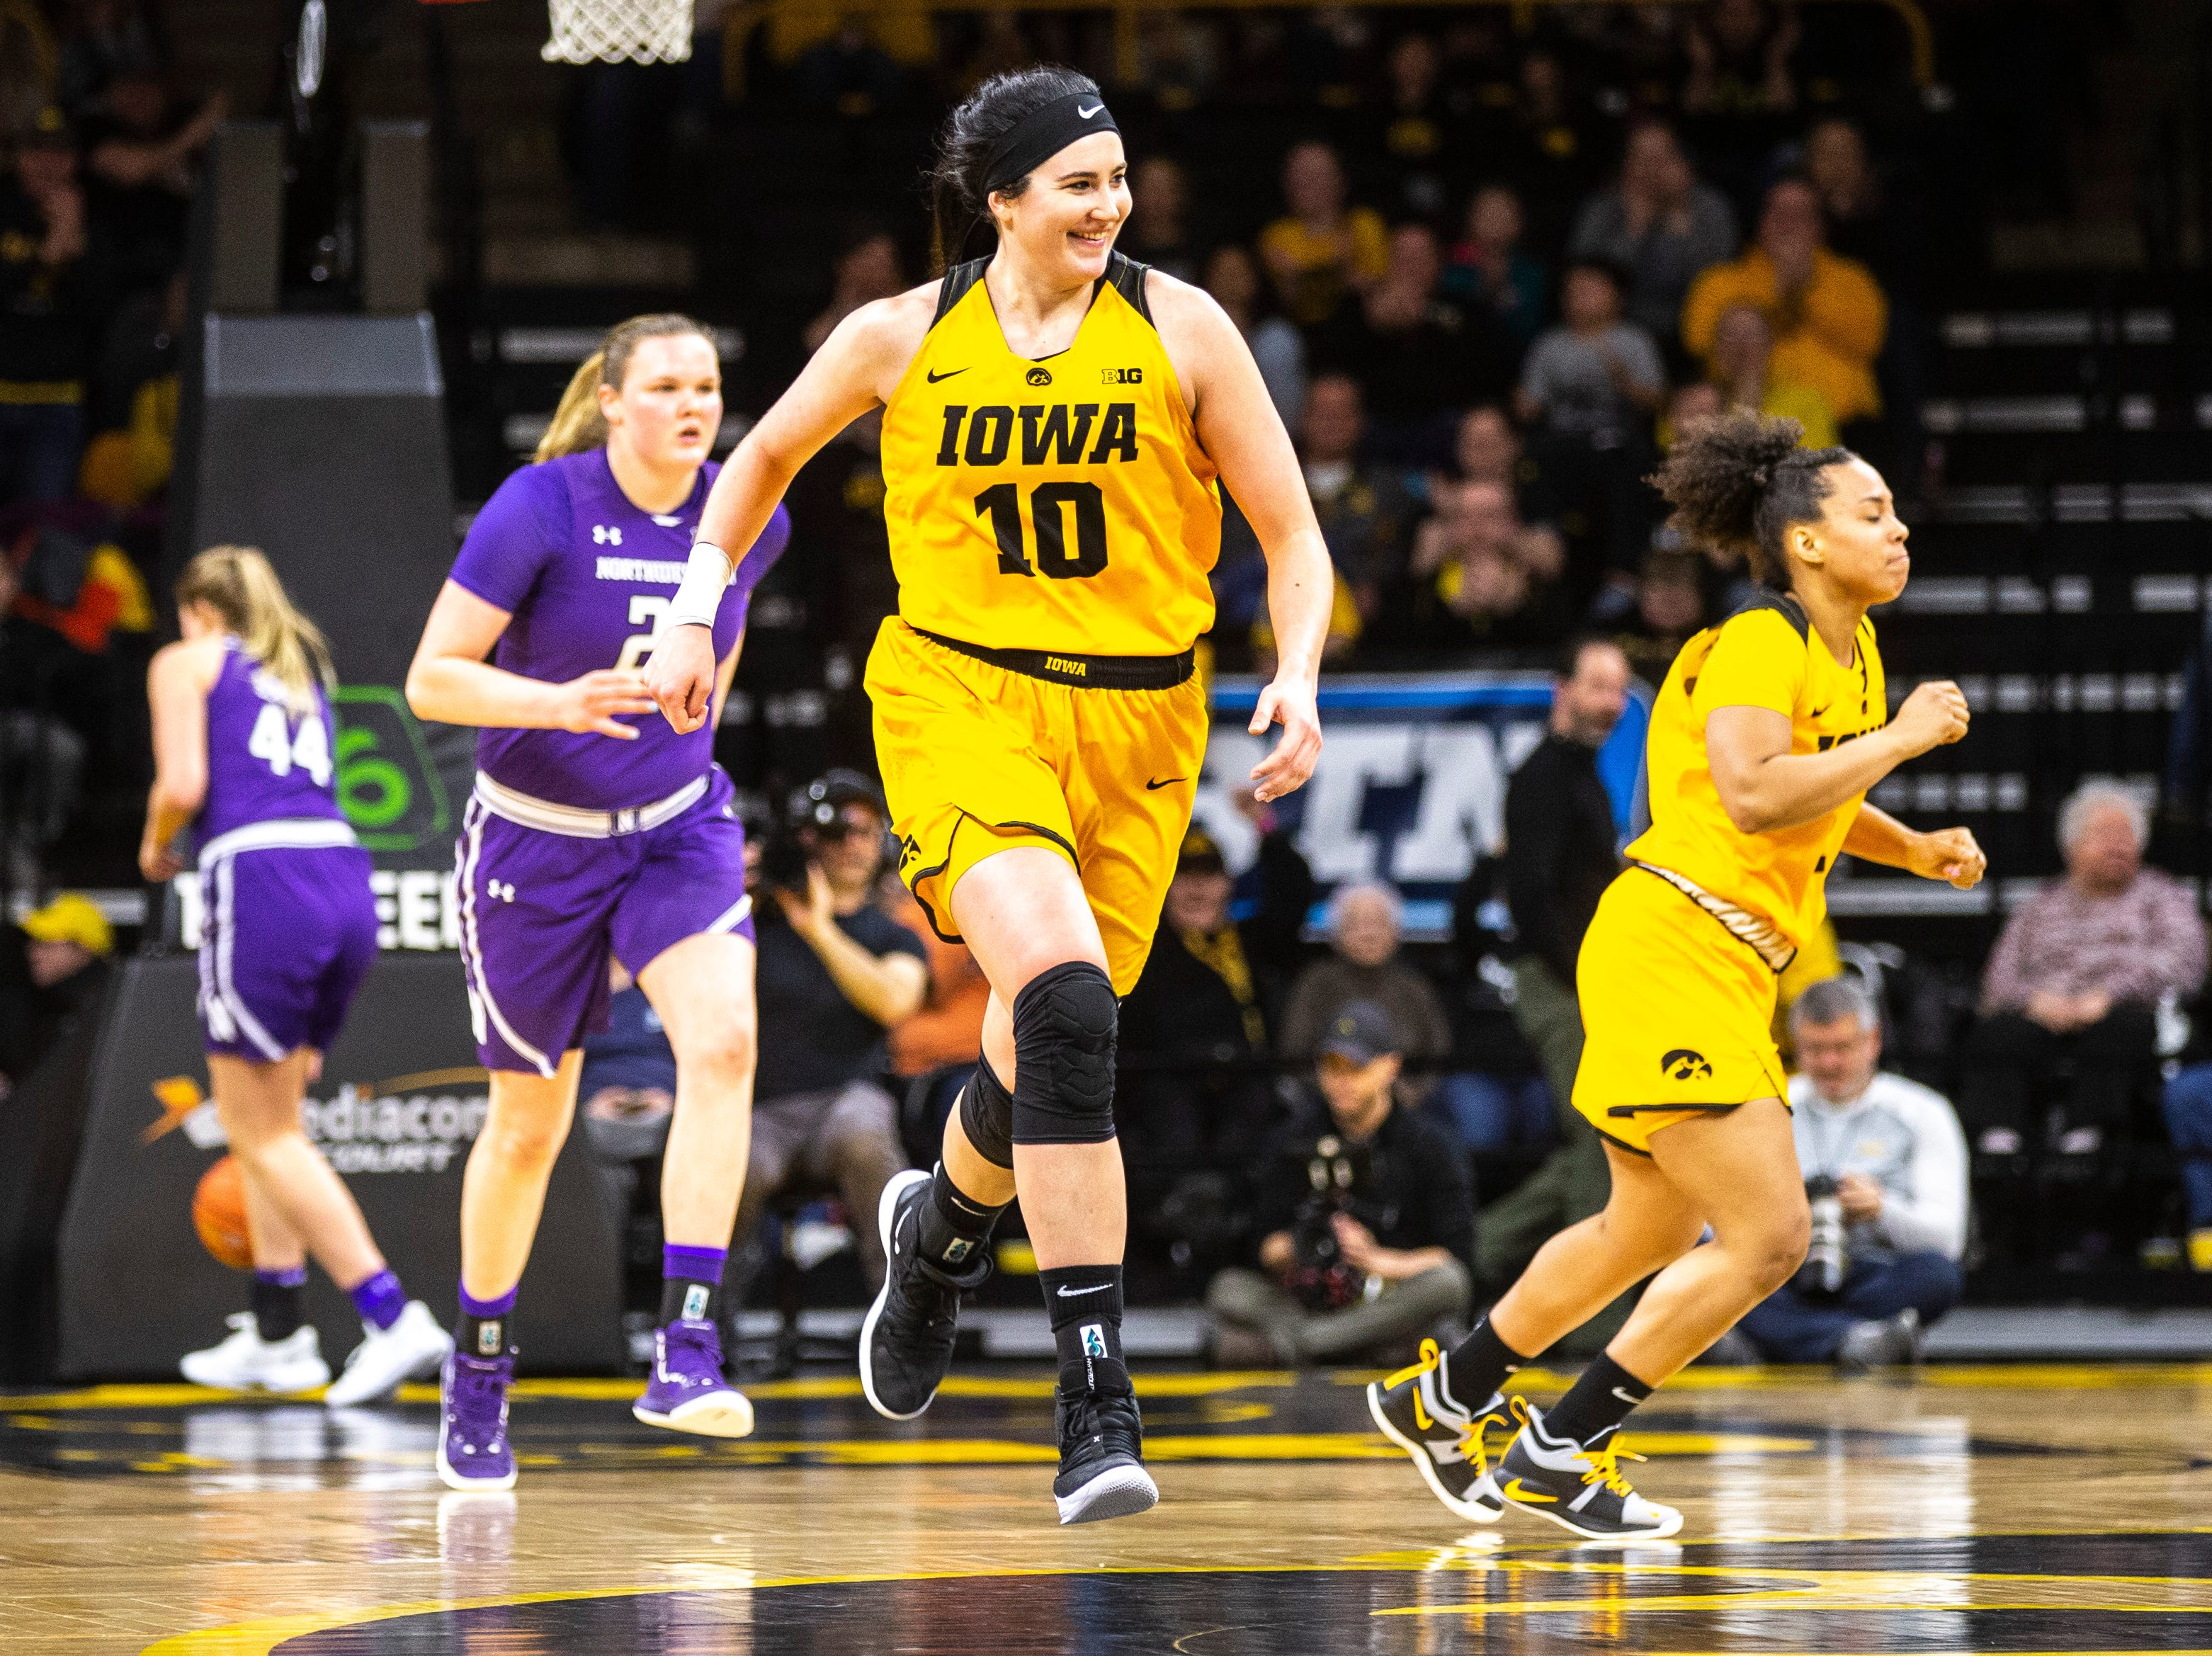 Iowa center Megan Gustafson (10) runs up court during a NCAA Big Ten Conference women's basketball game on Sunday, March 3, 2019, at Carver-Hawkeye Arena in Iowa City, Iowa.